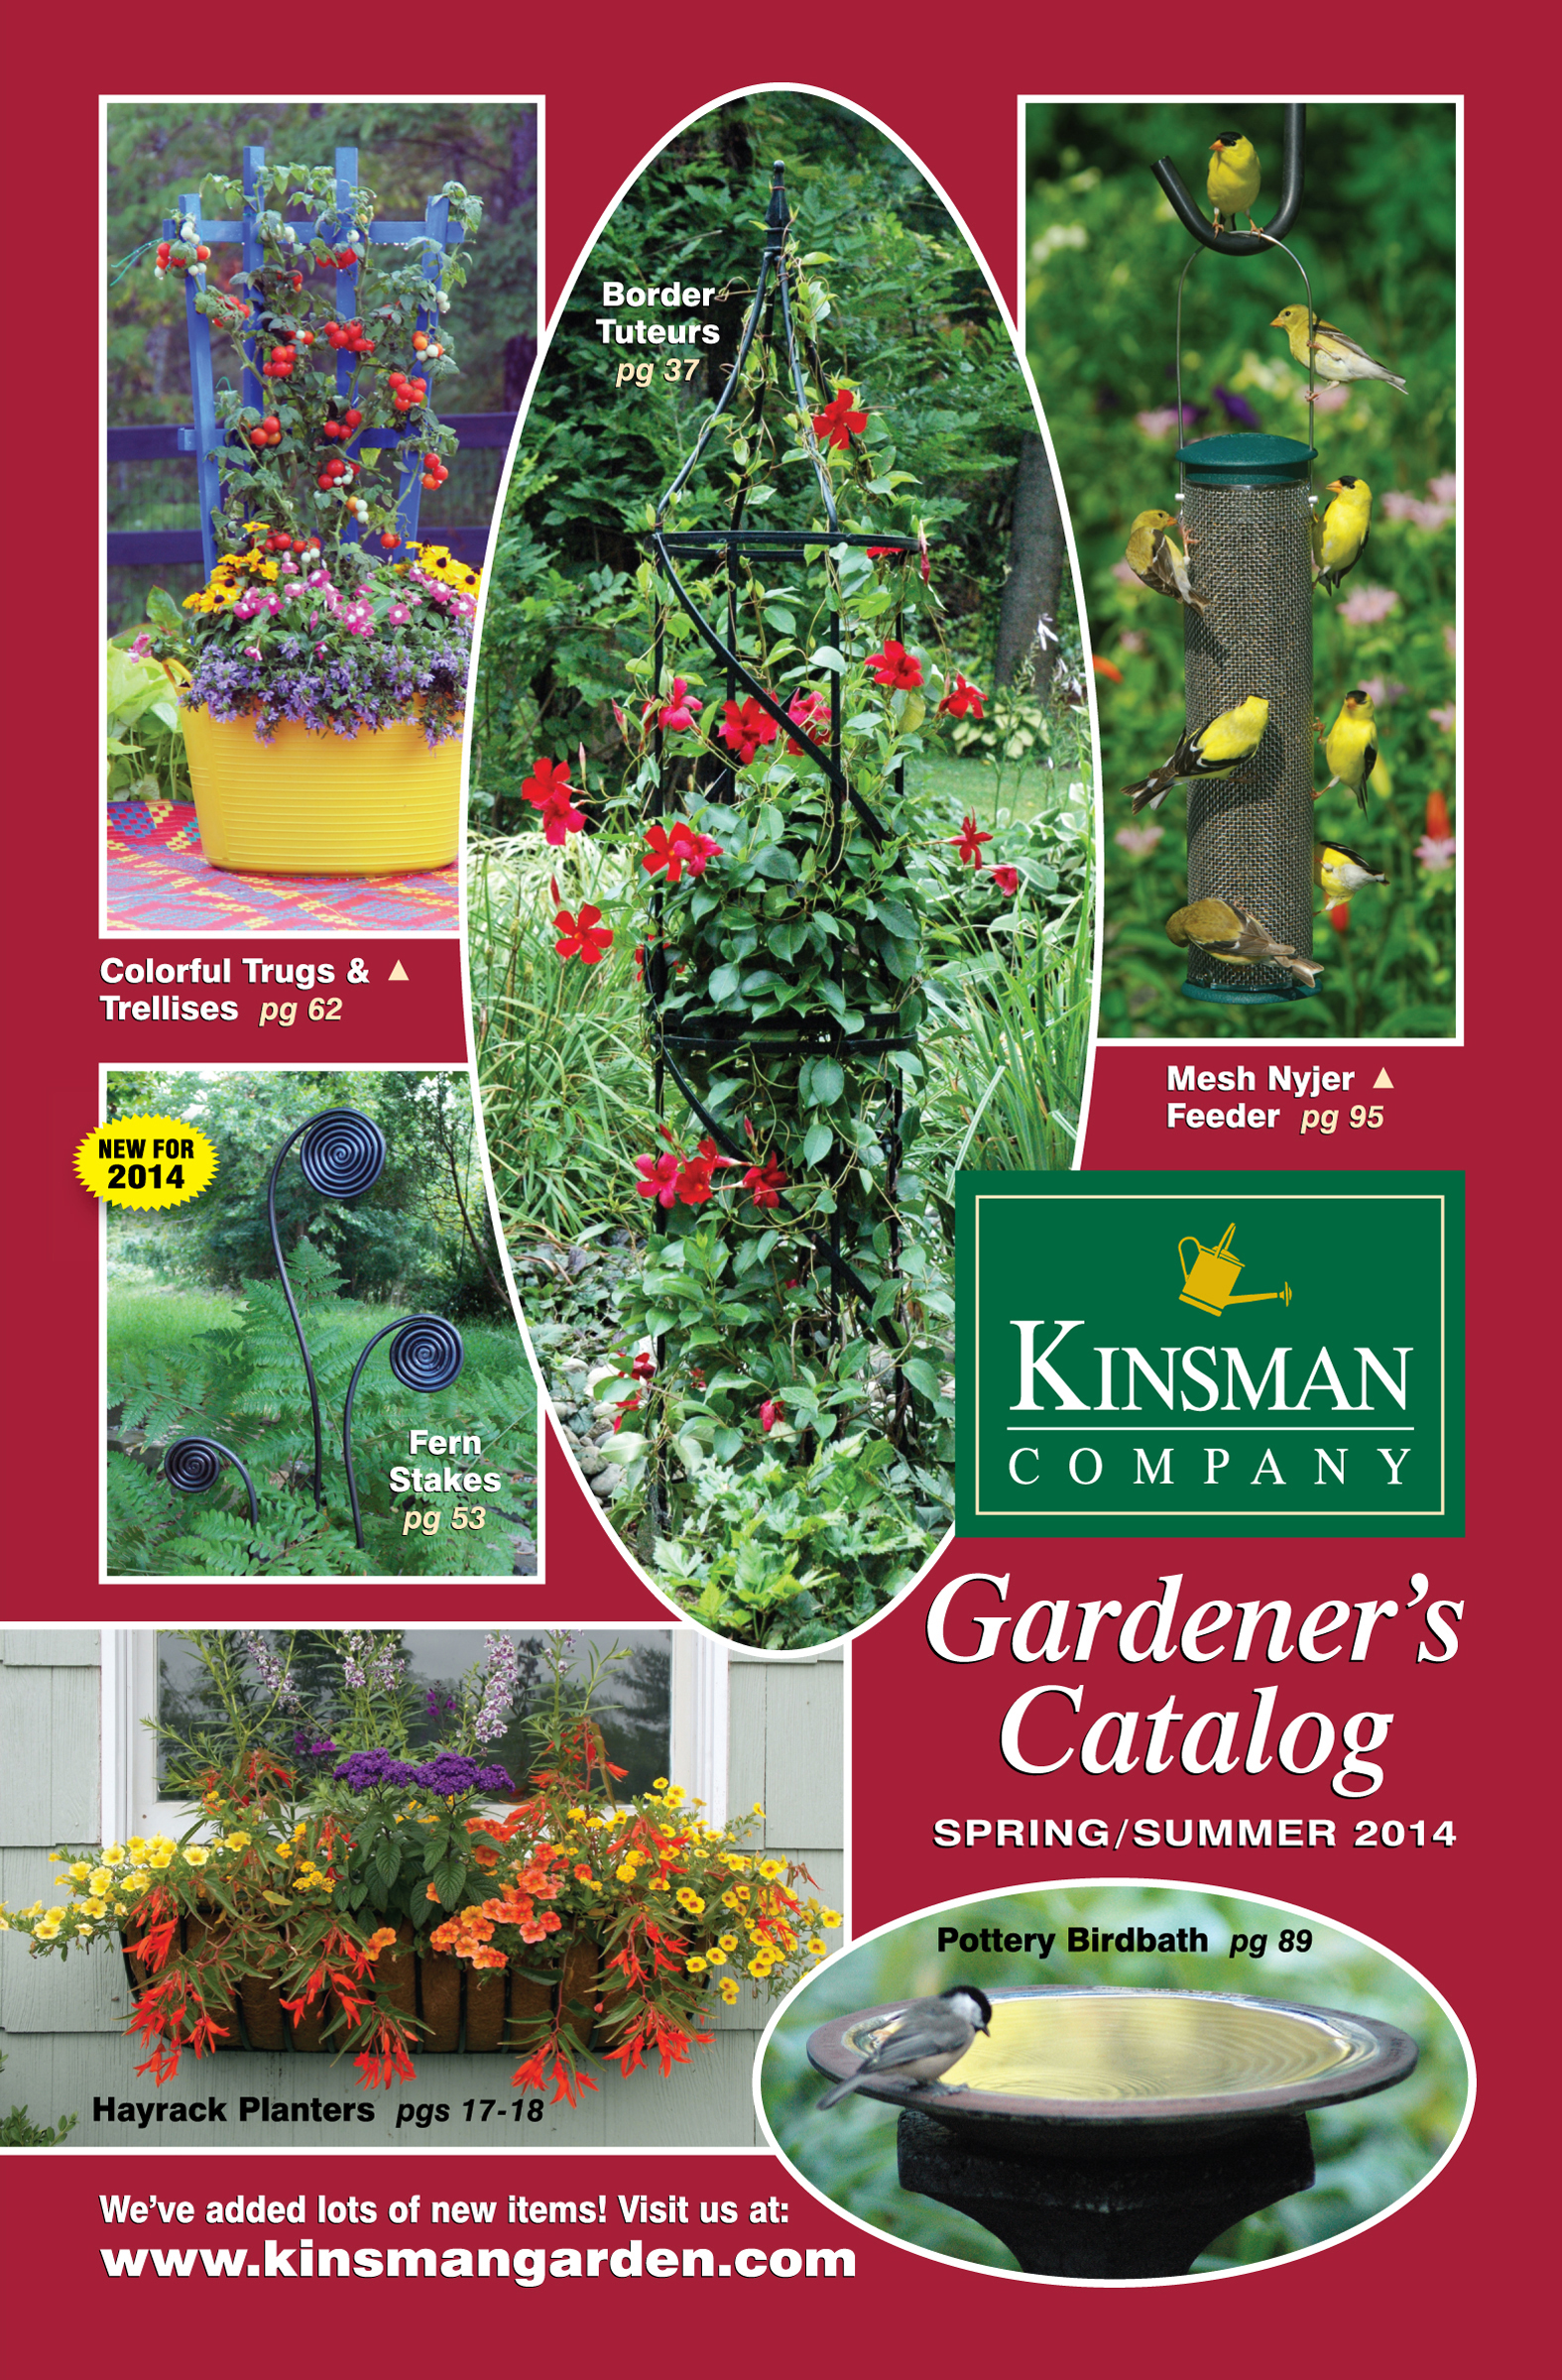 Kinsman Garden | EverEdge Lawn Edging & Gardening Supplies